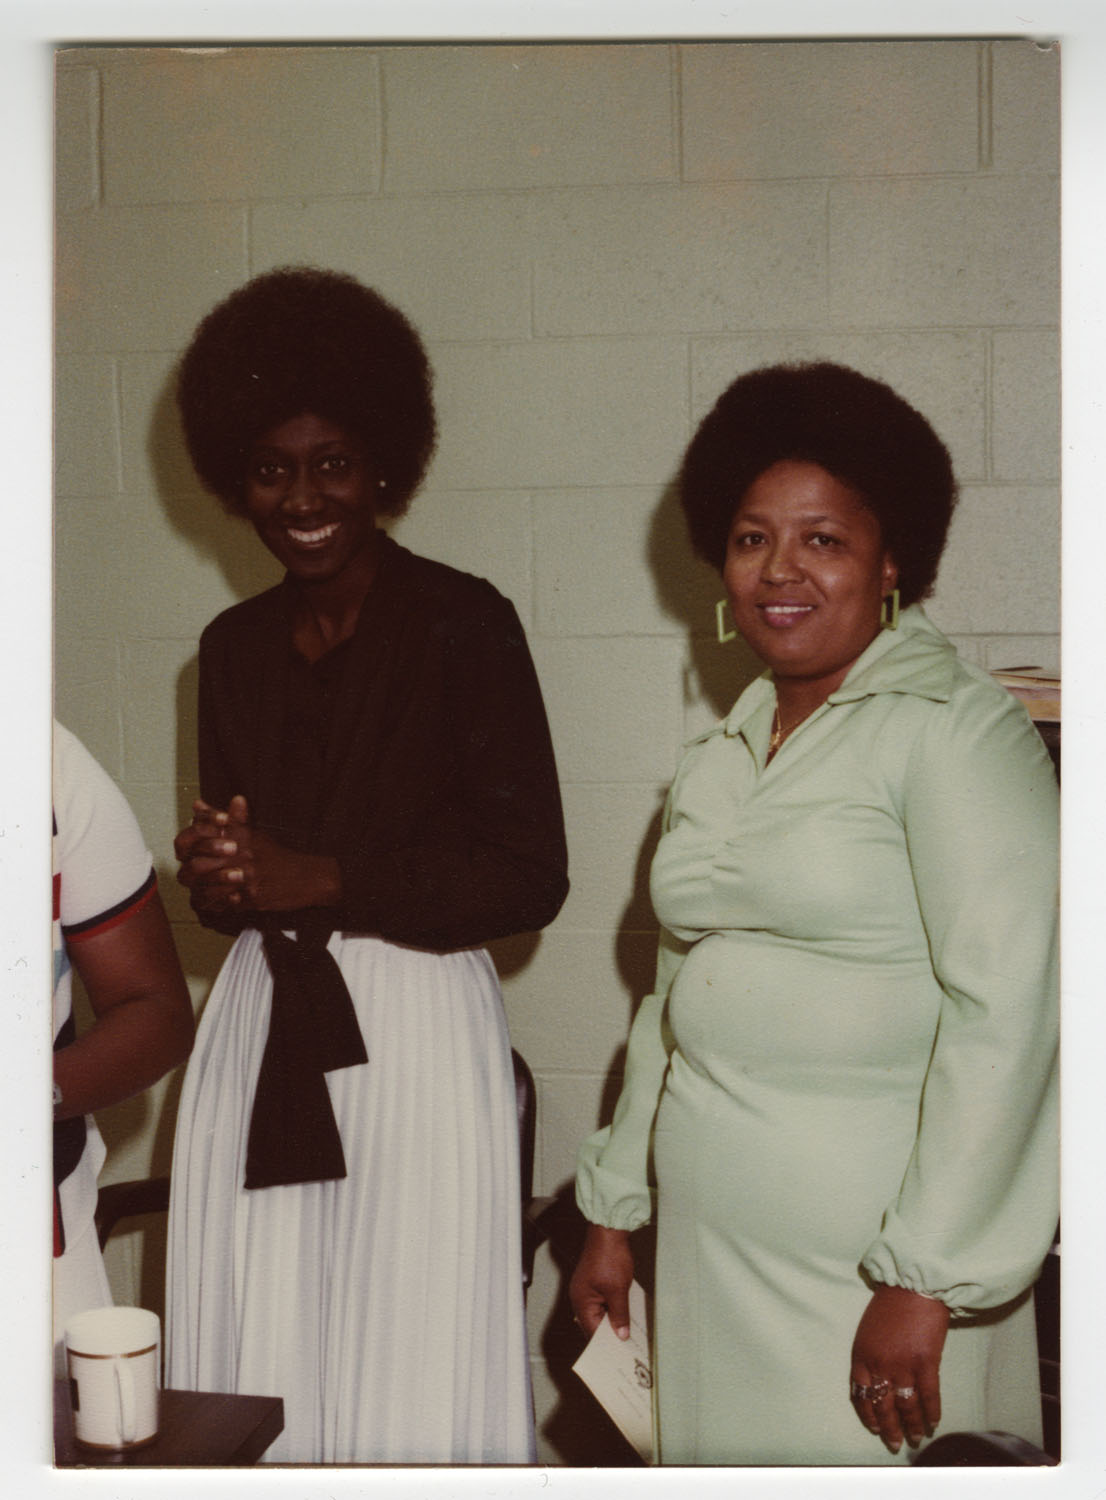 Mrs. Gethers and Mrs. Glass, Septima P. Clark Day Care Center Ceremony, May 19, 1978